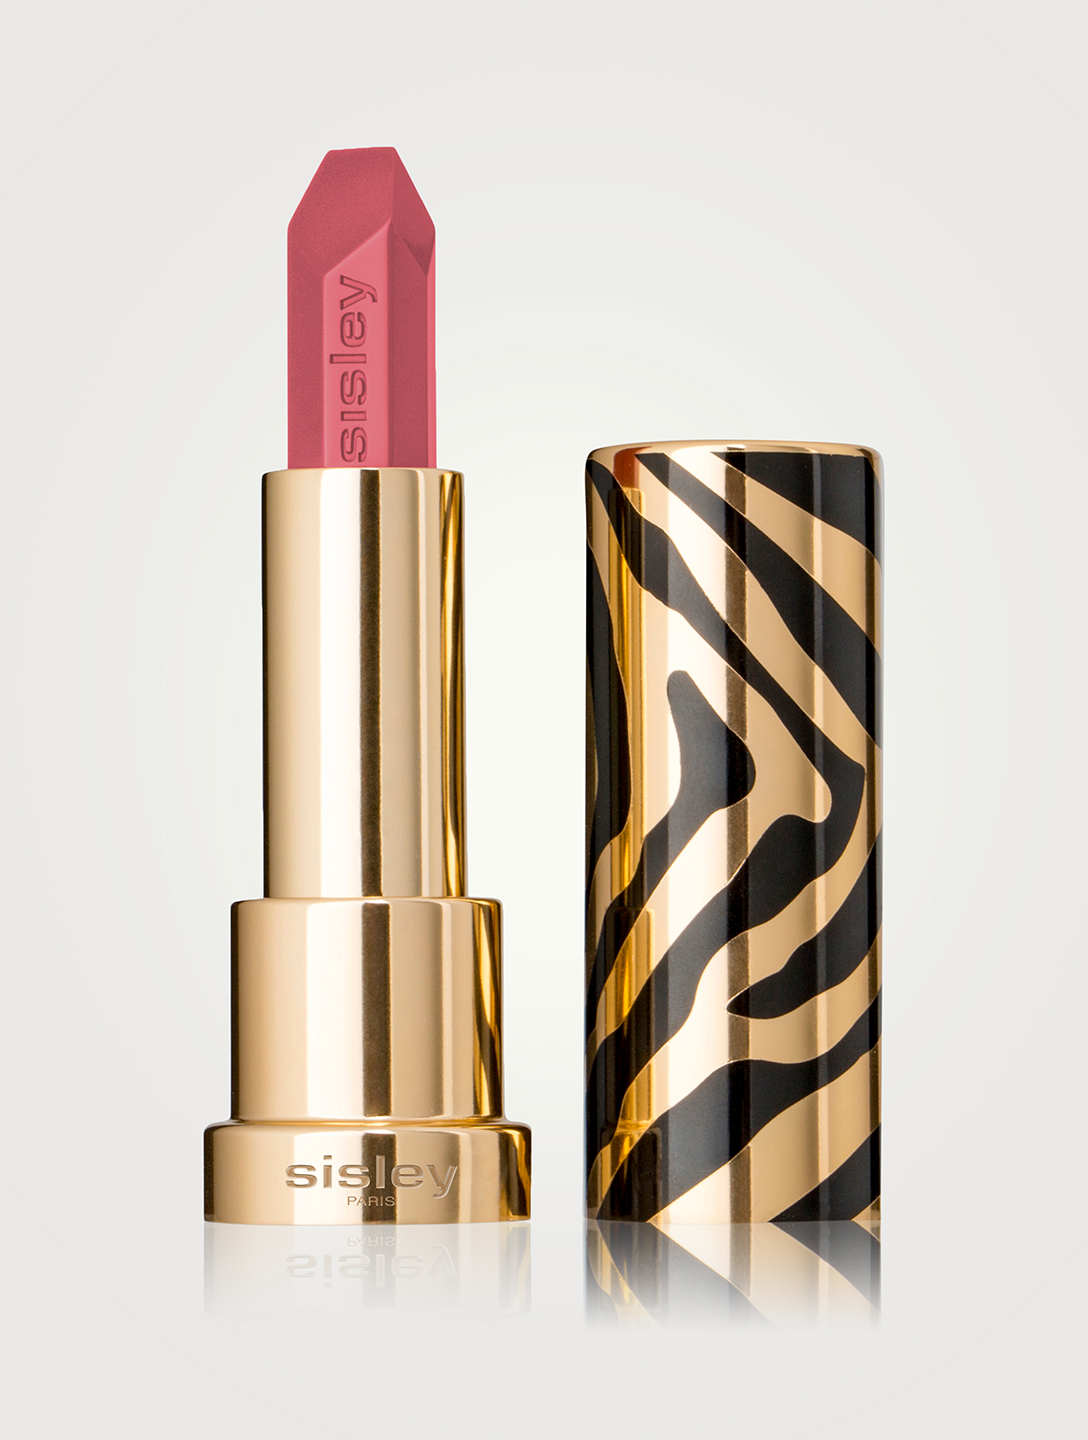 SISLEY-PARIS Le Phyto Rouge Lipstick Beauty Pink